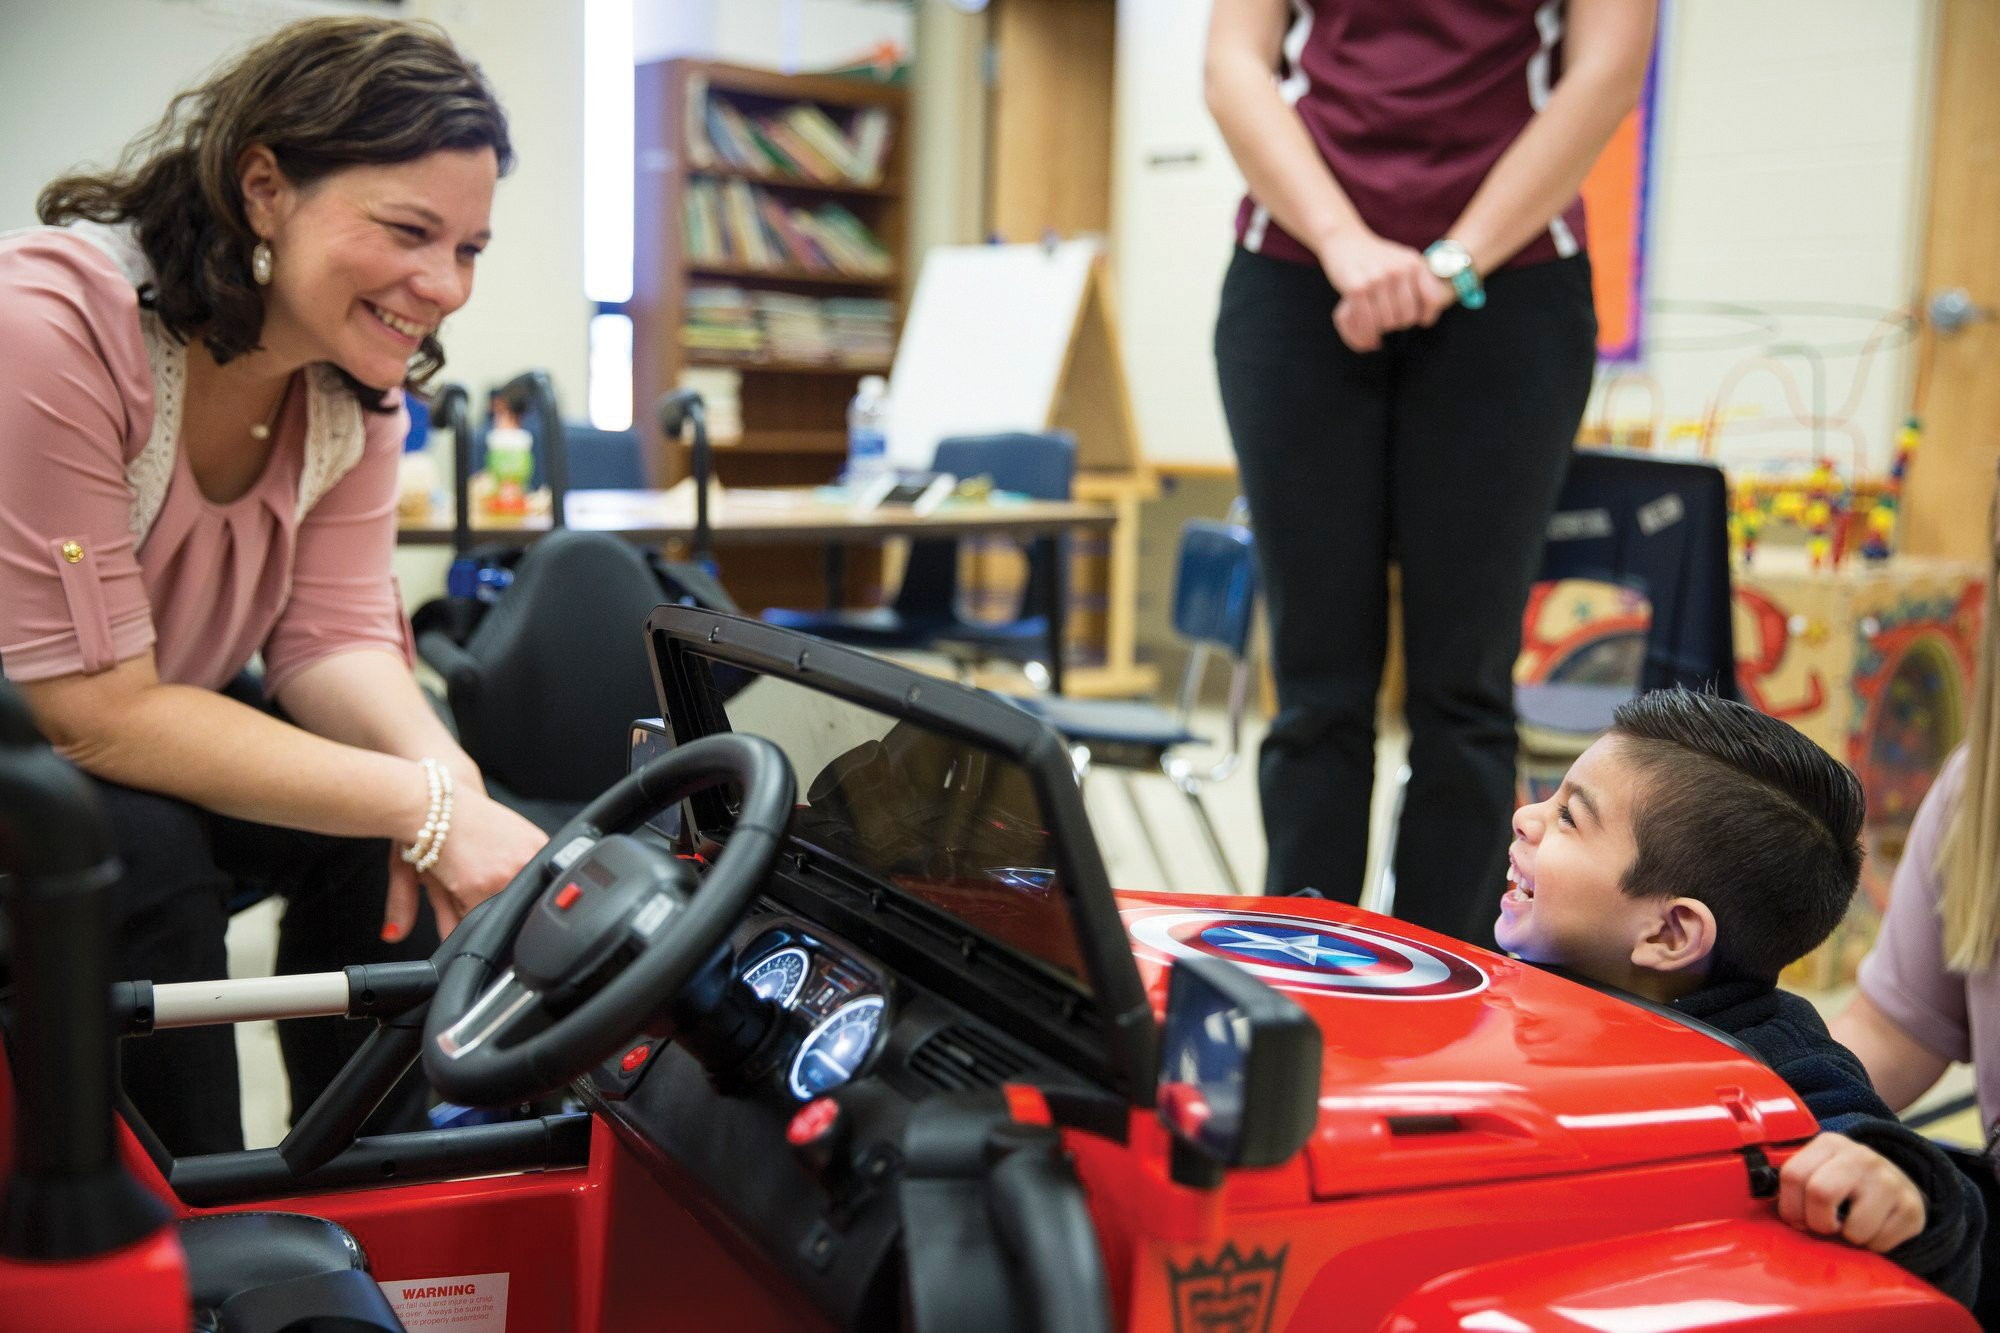 Abel Salazar, 4, laughs with occupational therapist Amanda Kern after unlatching the hood of his battery-operated Jeep at Dudley Elementary School. photo Angela Piazza, Victoria Advocate